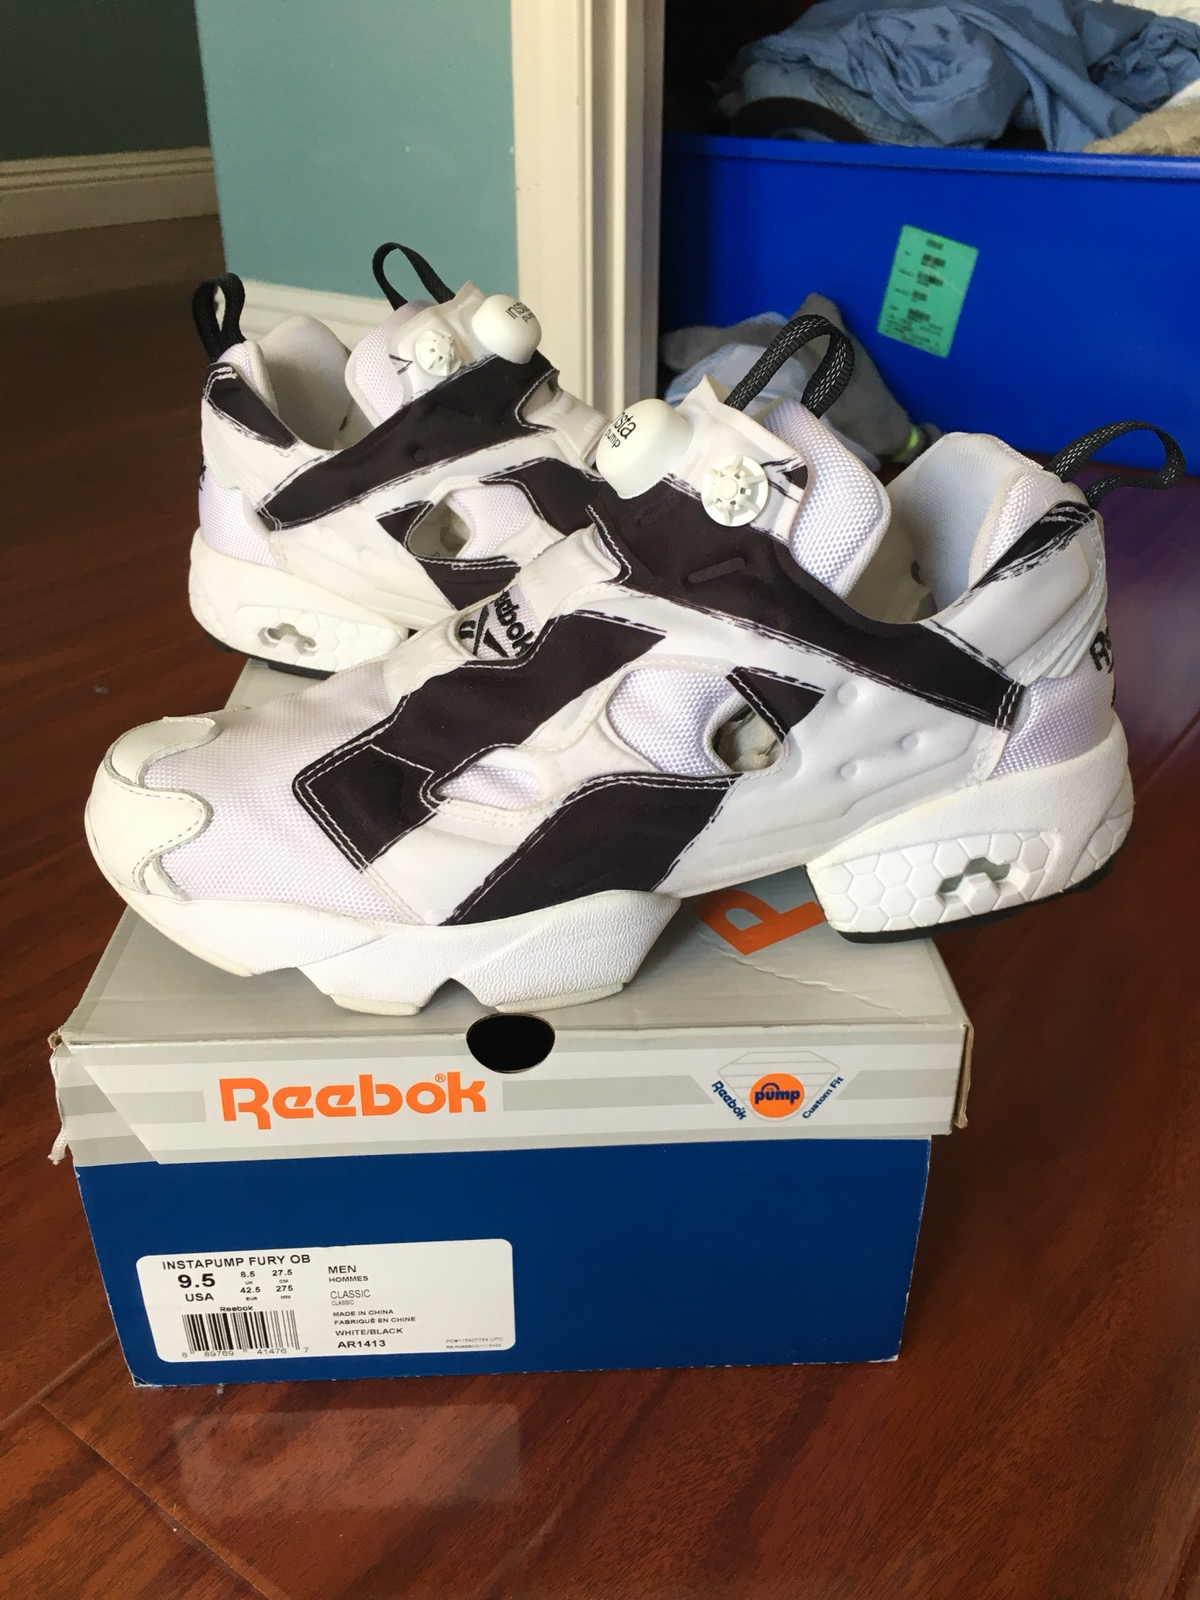 Reebok Future x Reebok Instapump Fury Overbranded Size 9.5 Black White Size  9.5 - Low-Top Sneakers for Sale - Grailed 9e074c8ea